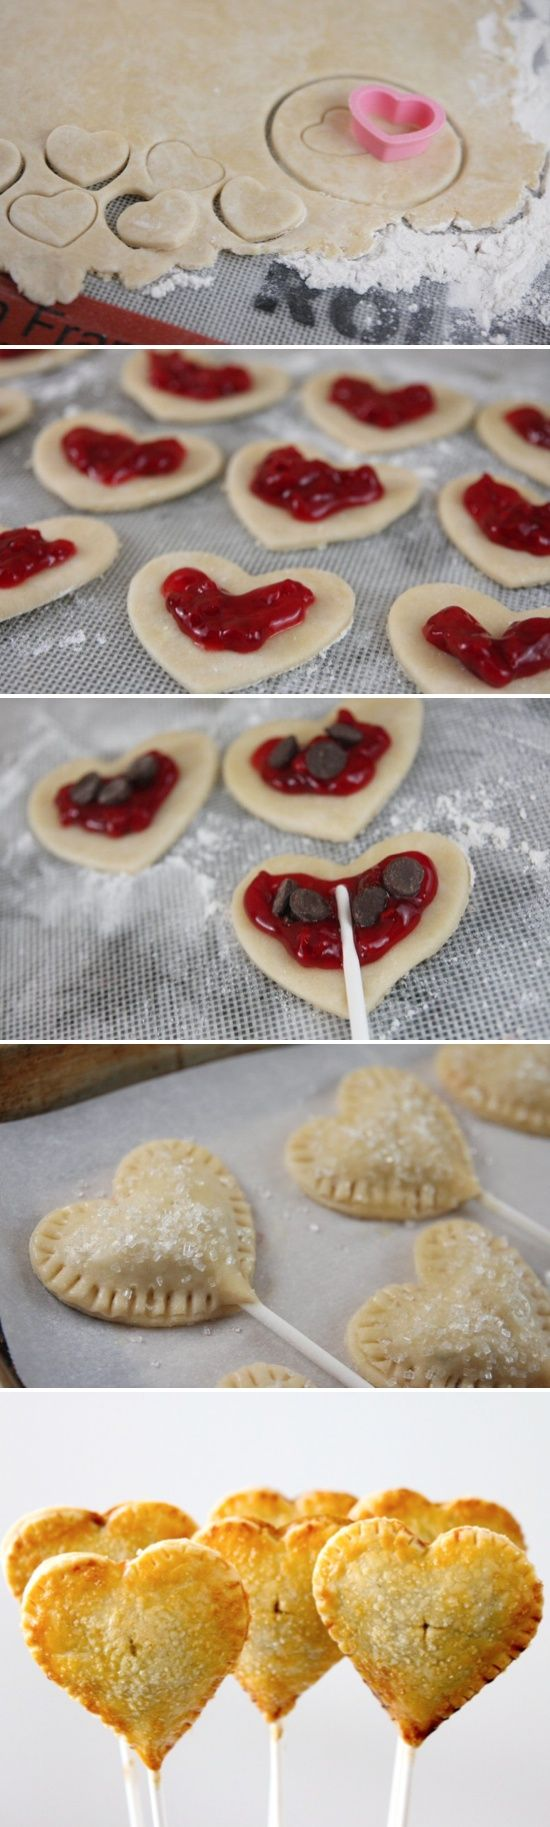 heart pie pops: precious. perfect for Valentine's Day